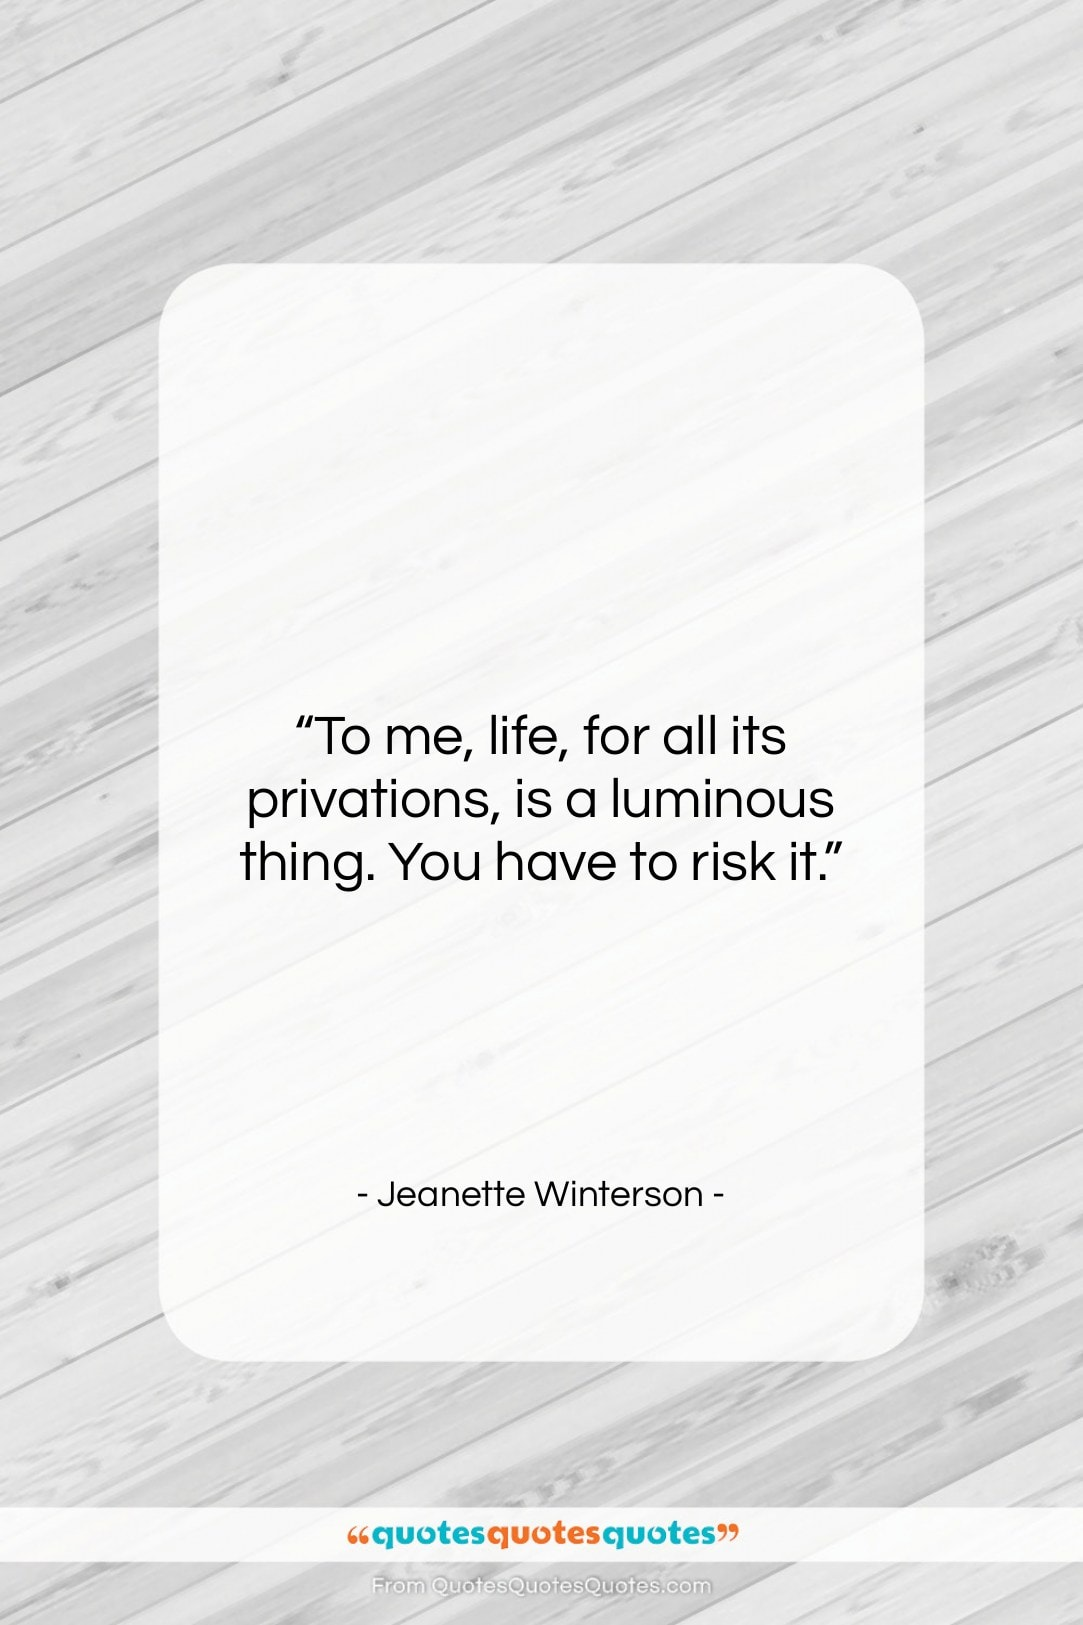 """Jeanette Winterson quote: """"To me, life, for all its privations,…""""- at QuotesQuotesQuotes.com"""